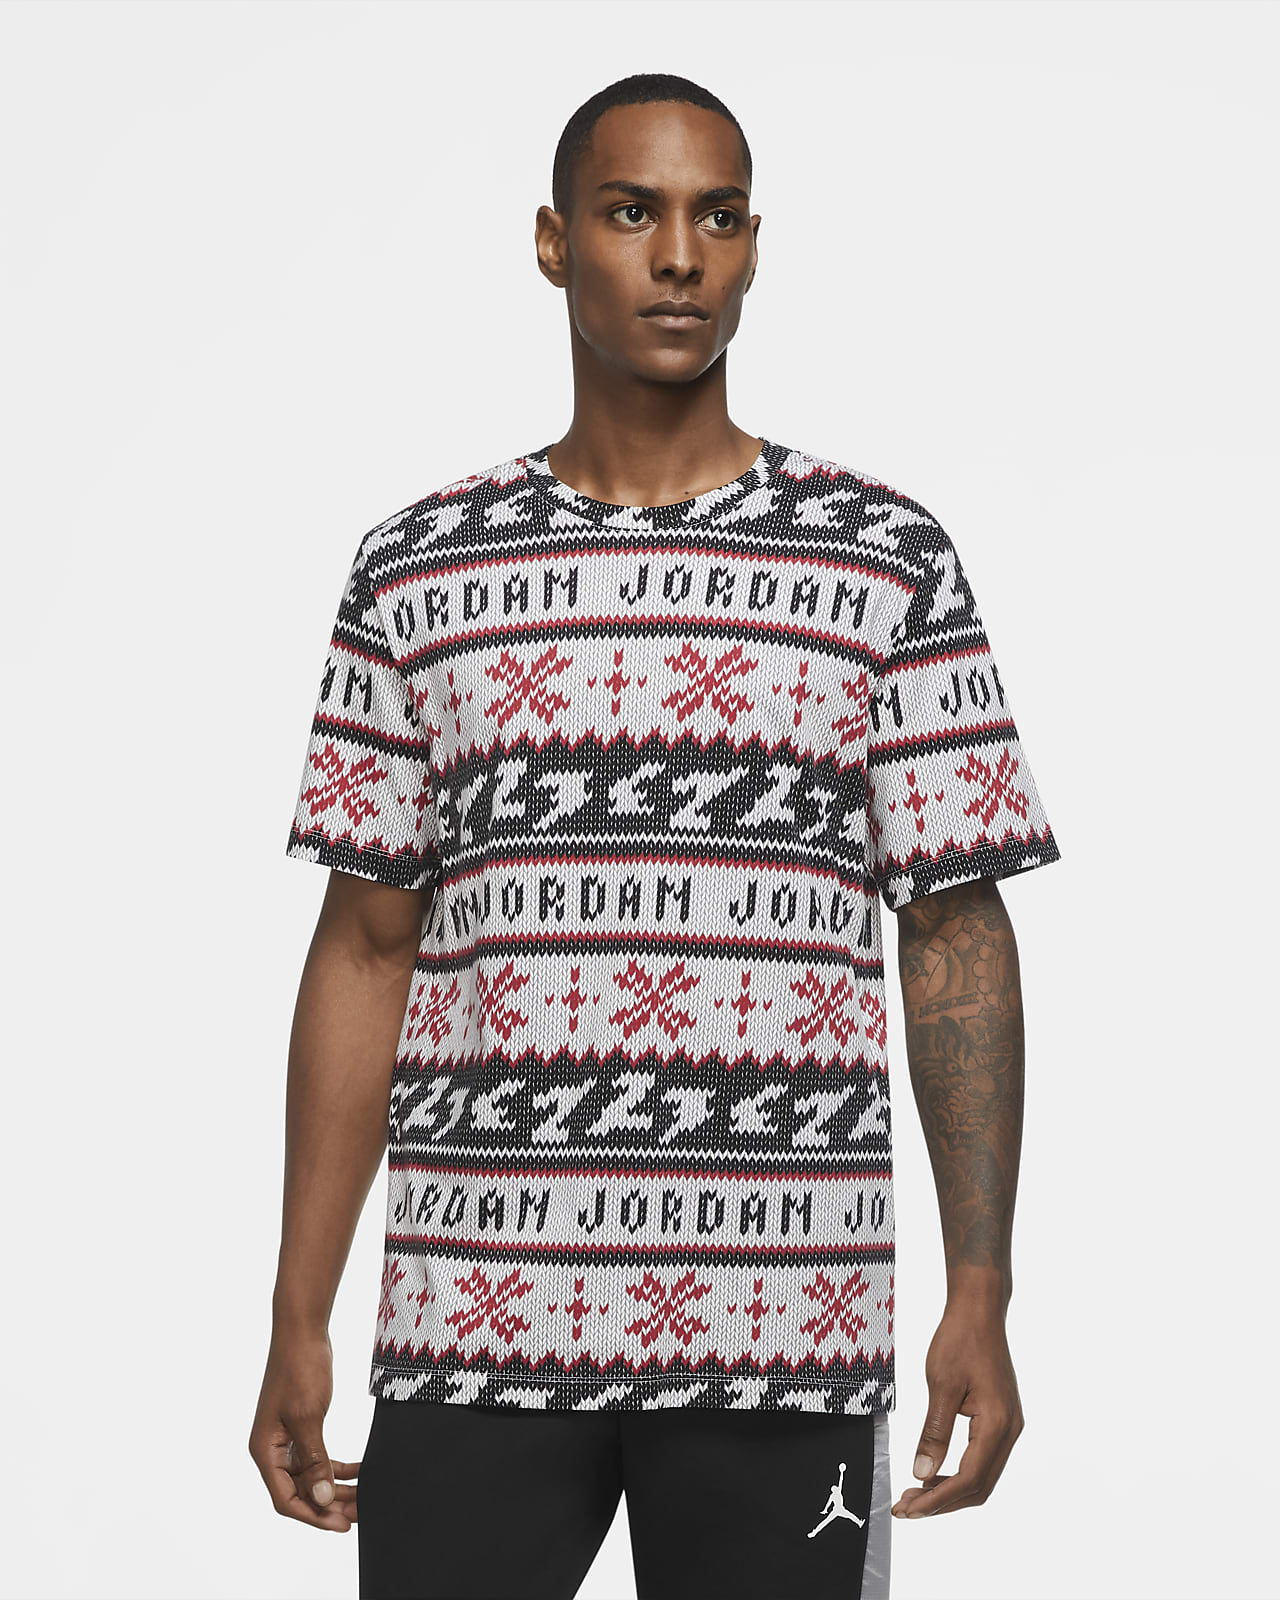 Jordan Ugly Sweater Men's Short-Sleeve T-Shirt